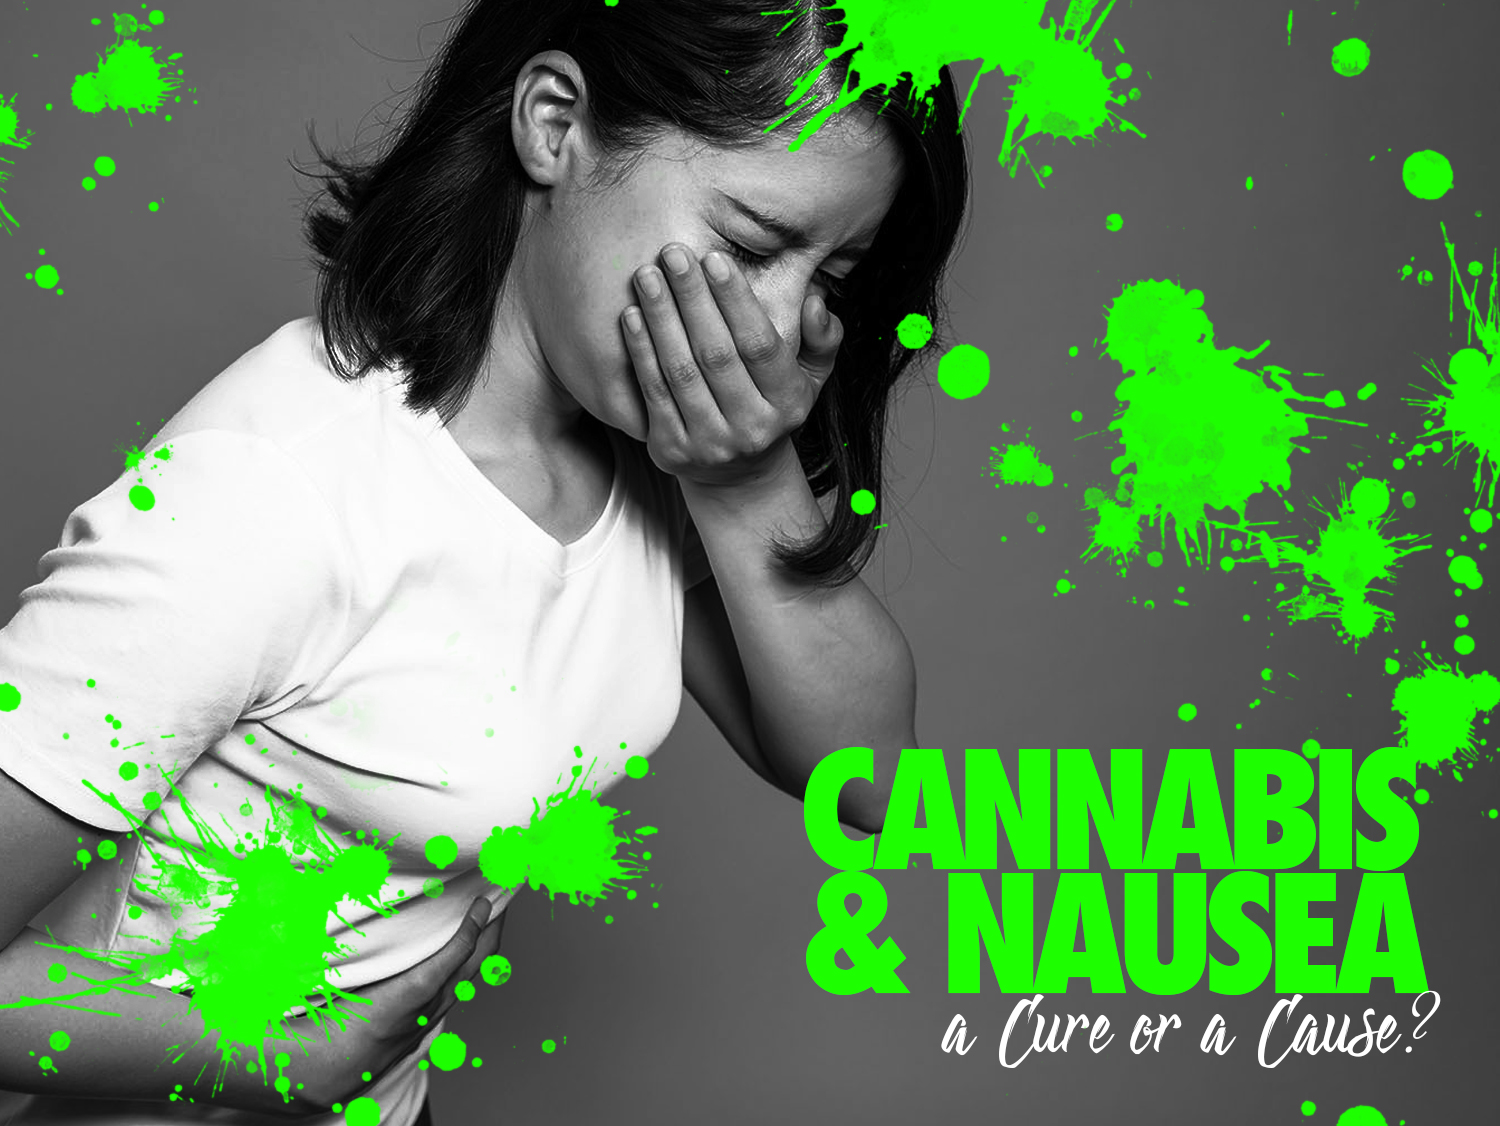 Cannabis and Nausea. Cure or Cause?